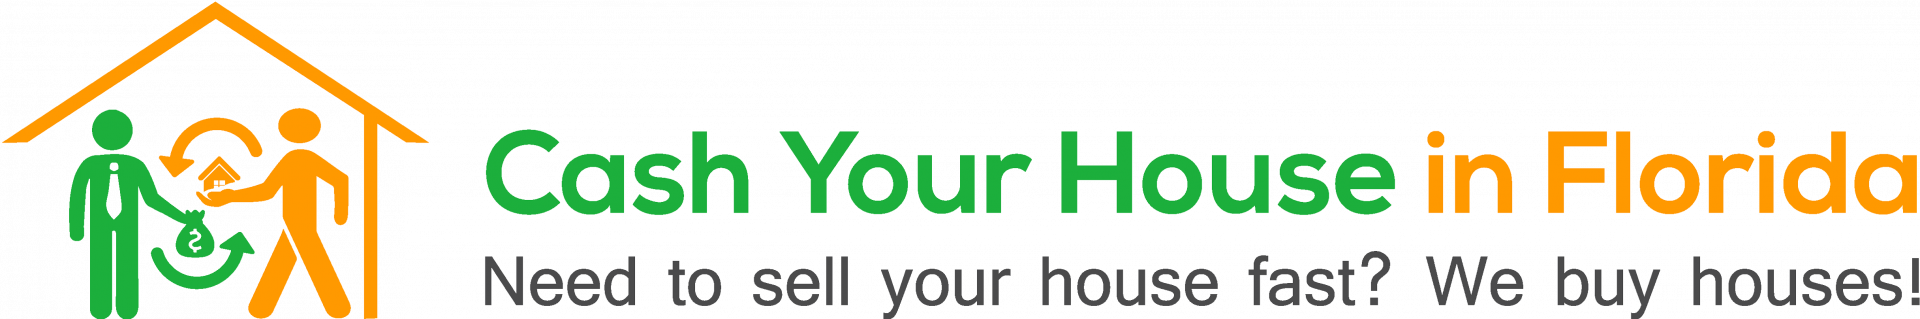 Cash your House in Florida logo